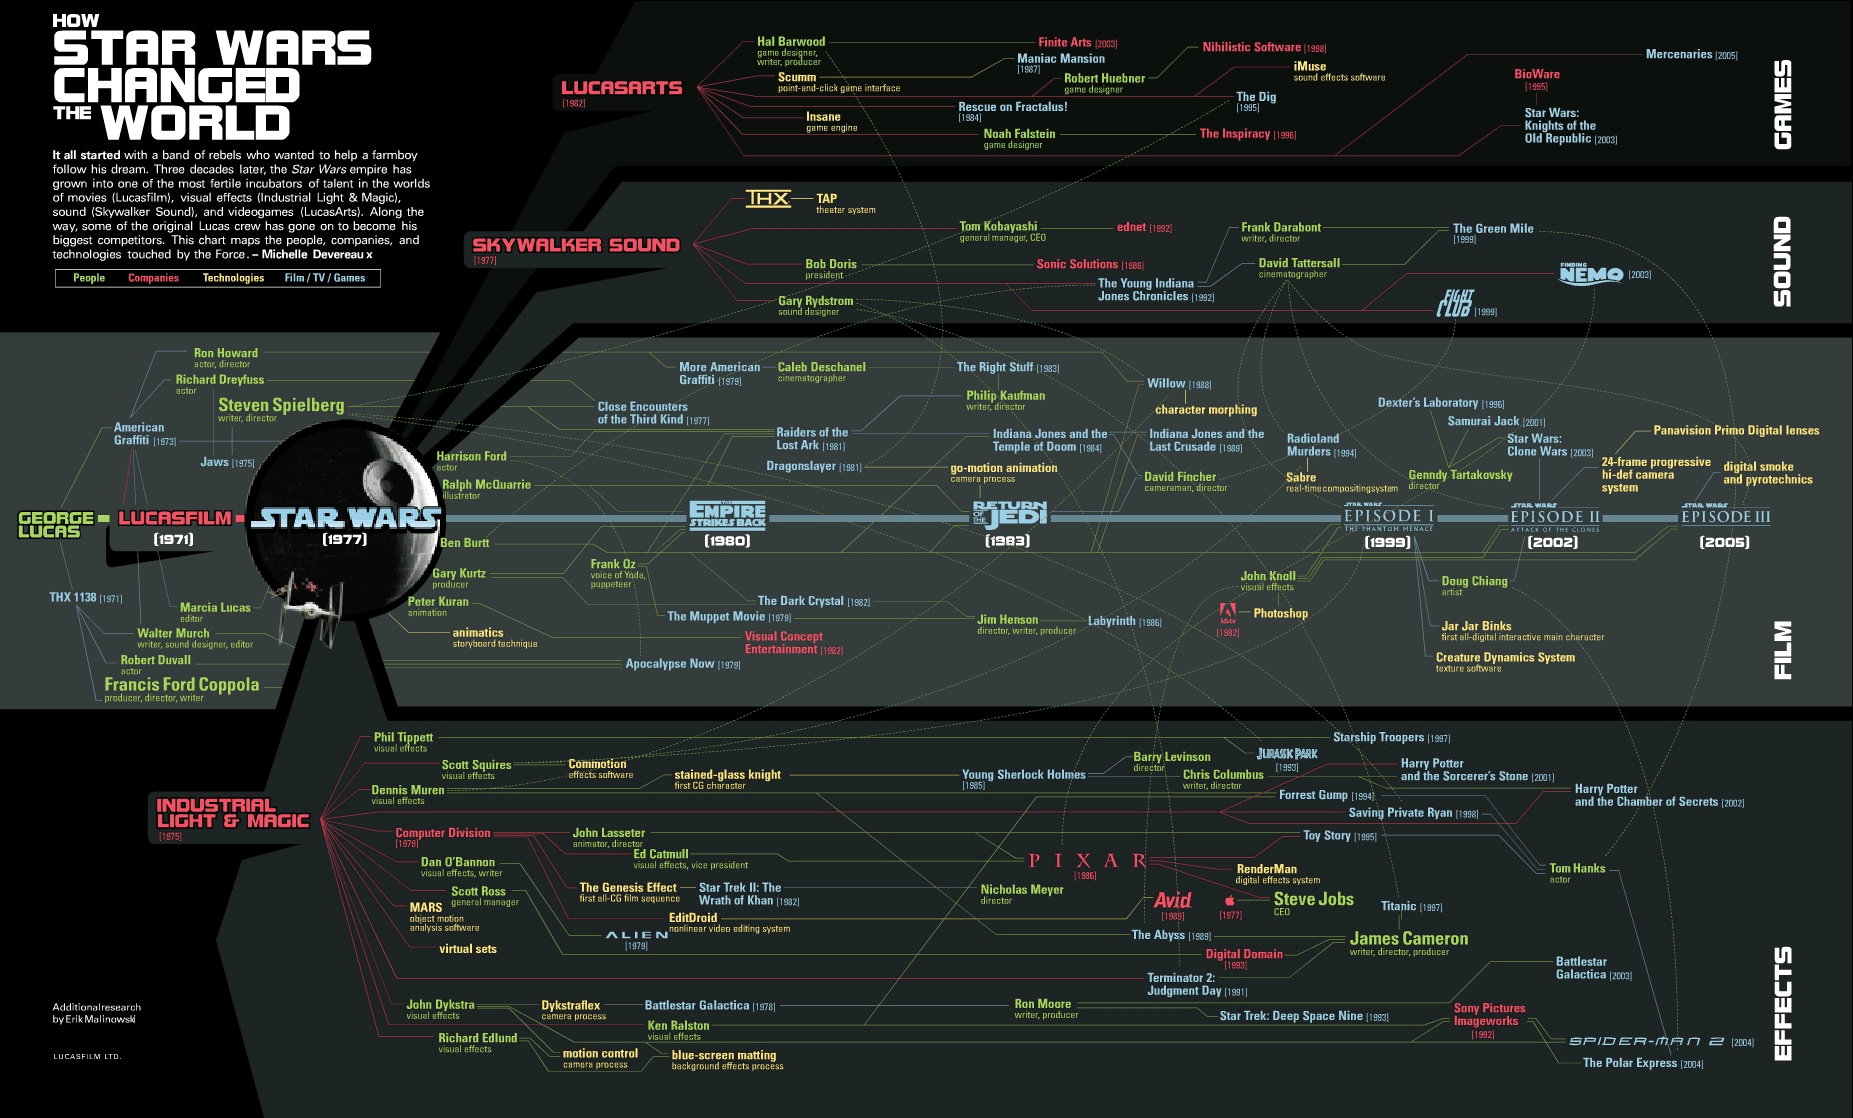 starwars_infographic_large-1